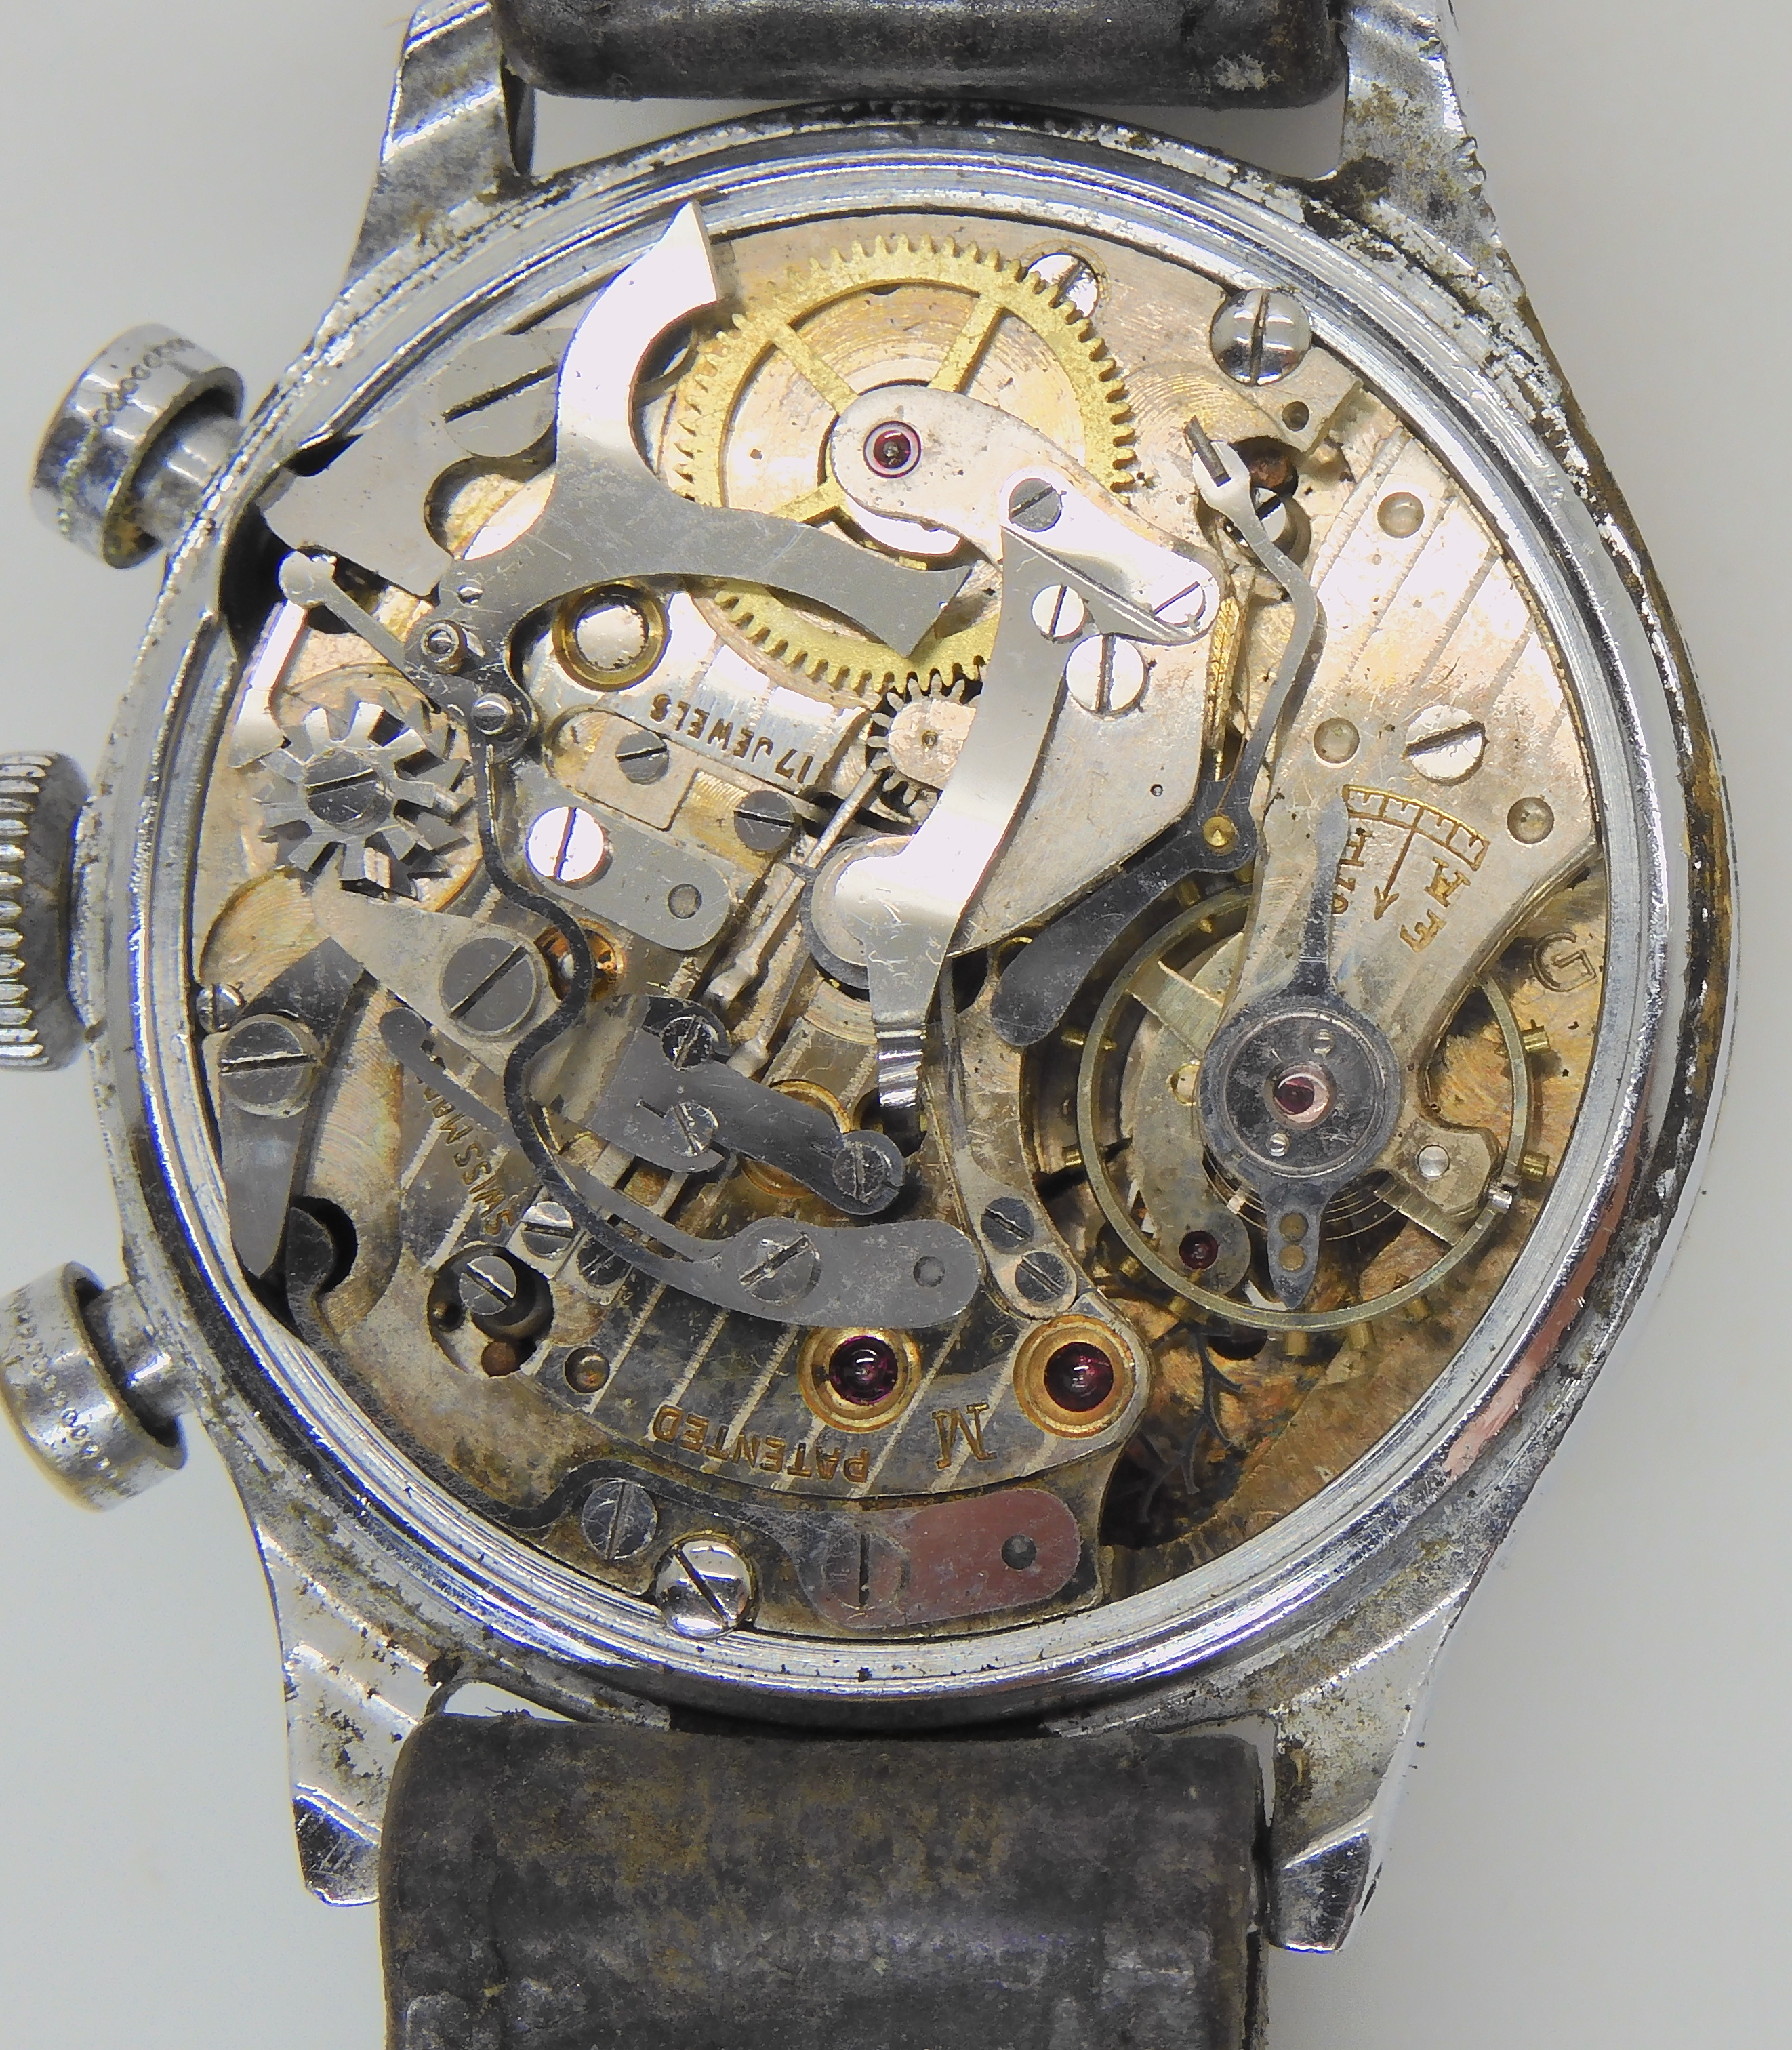 TWO MILITARY WATCHES a base metal Waltham pocket watch with a black dial subsidiary seconds dial and - Image 4 of 5